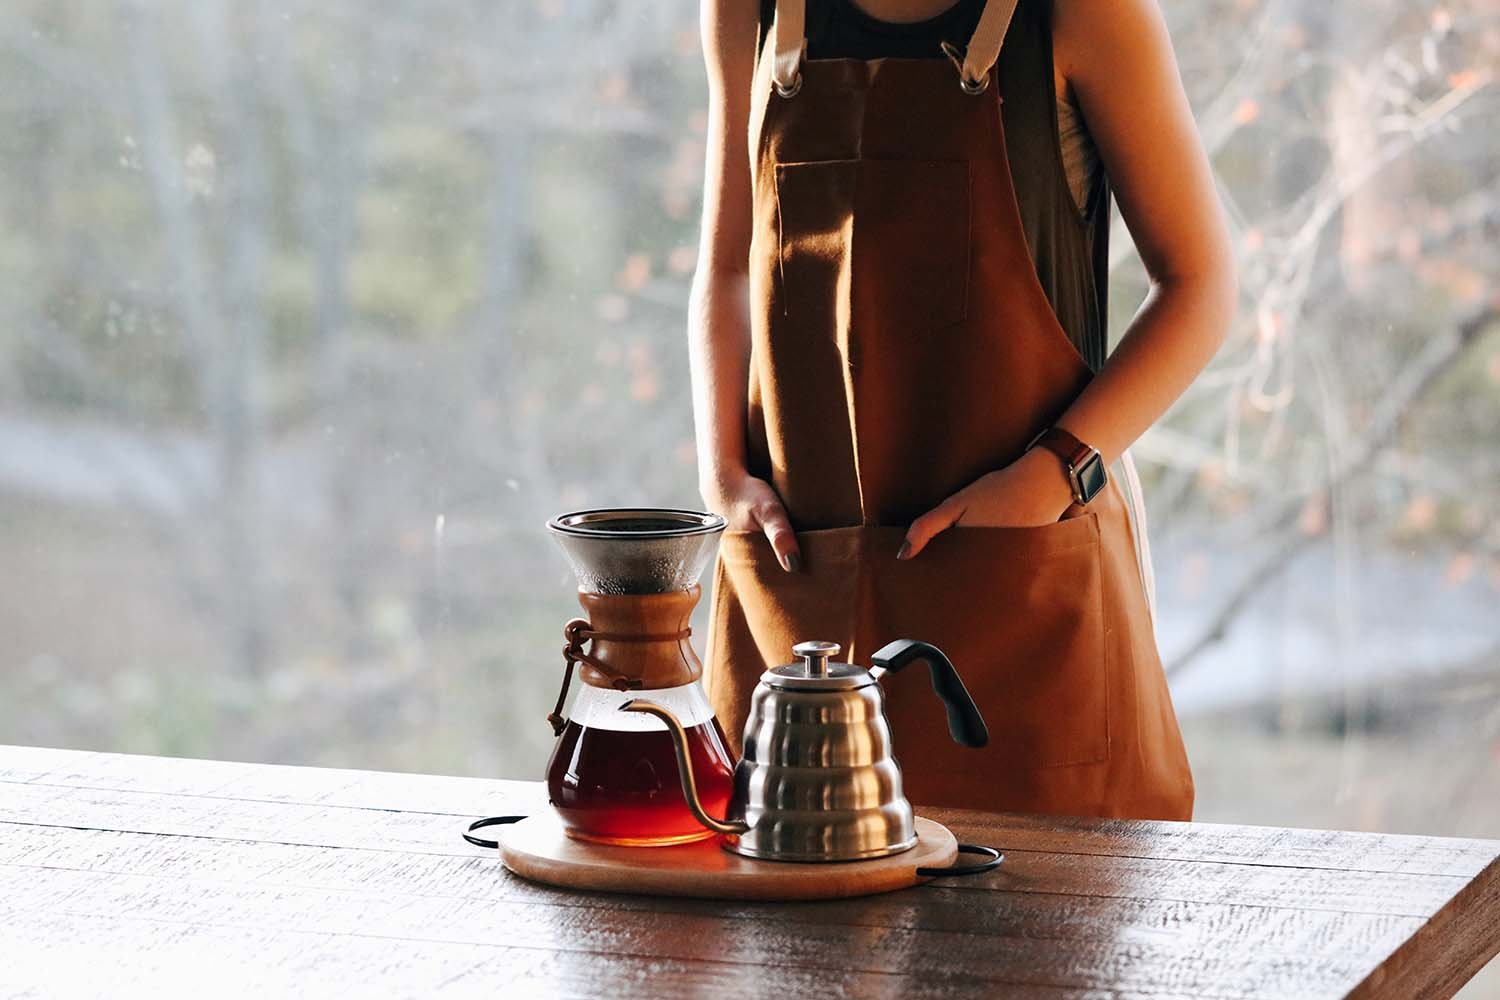 TITANIUM COATED GOLD Pour Over Coffee Filter - Reusable Stainless Steel Drip Cone for Chemex, Hario V60, Carafes and Other Coffee Makers by Barista Warrior (Image #5)